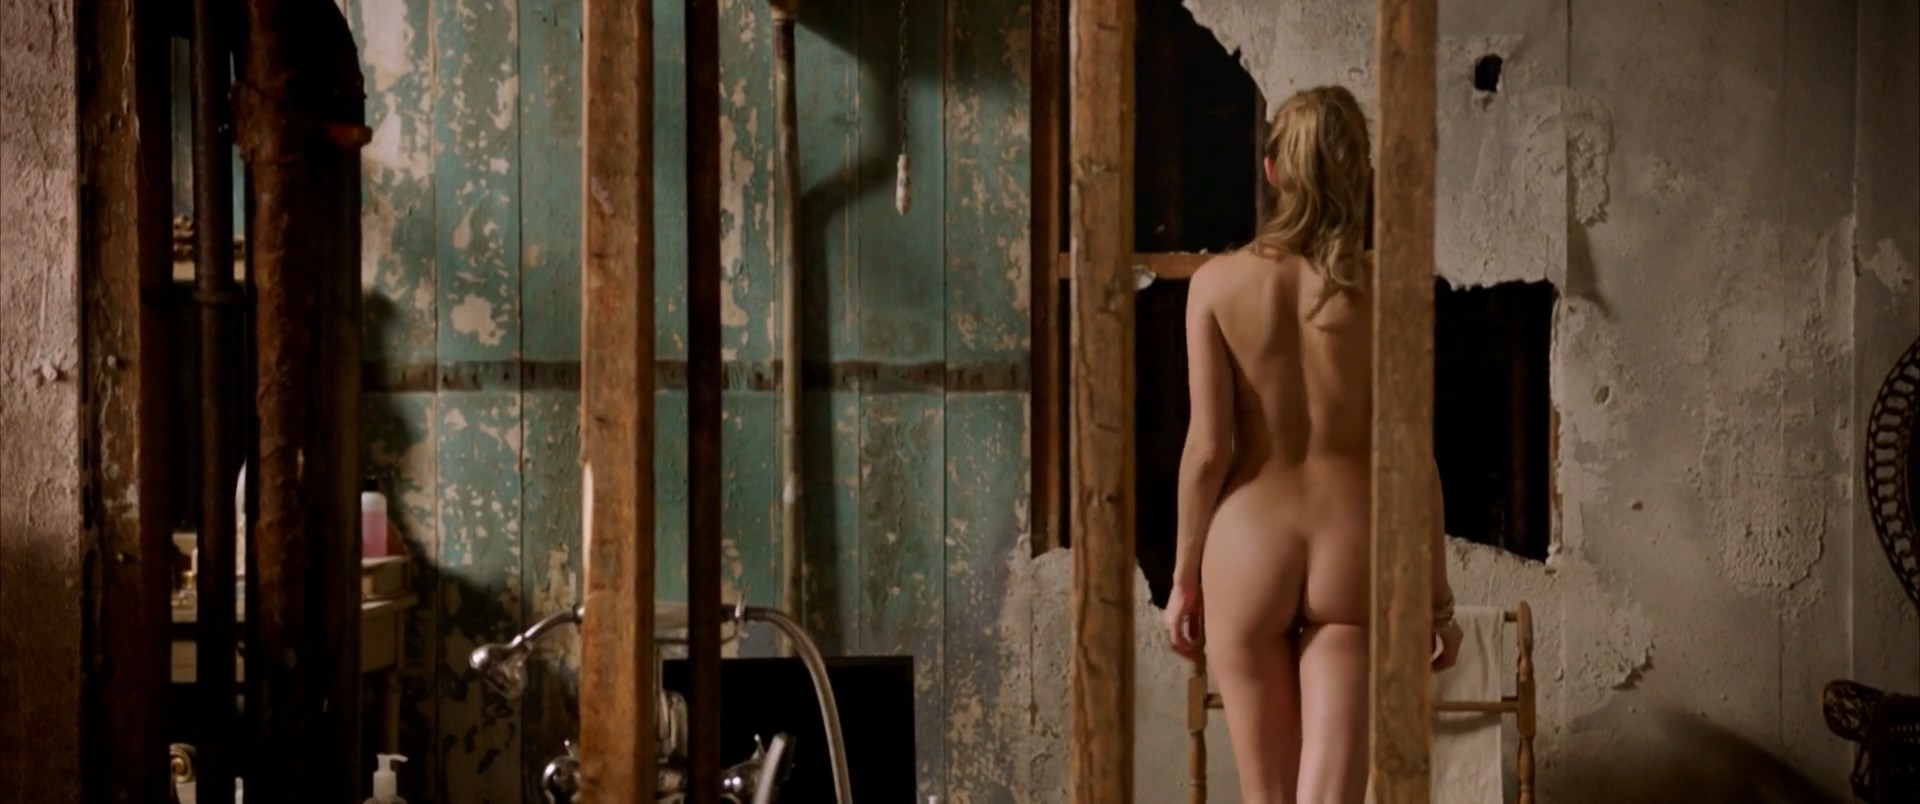 Amber Heard Nue amber heard nude - london fields (2018)